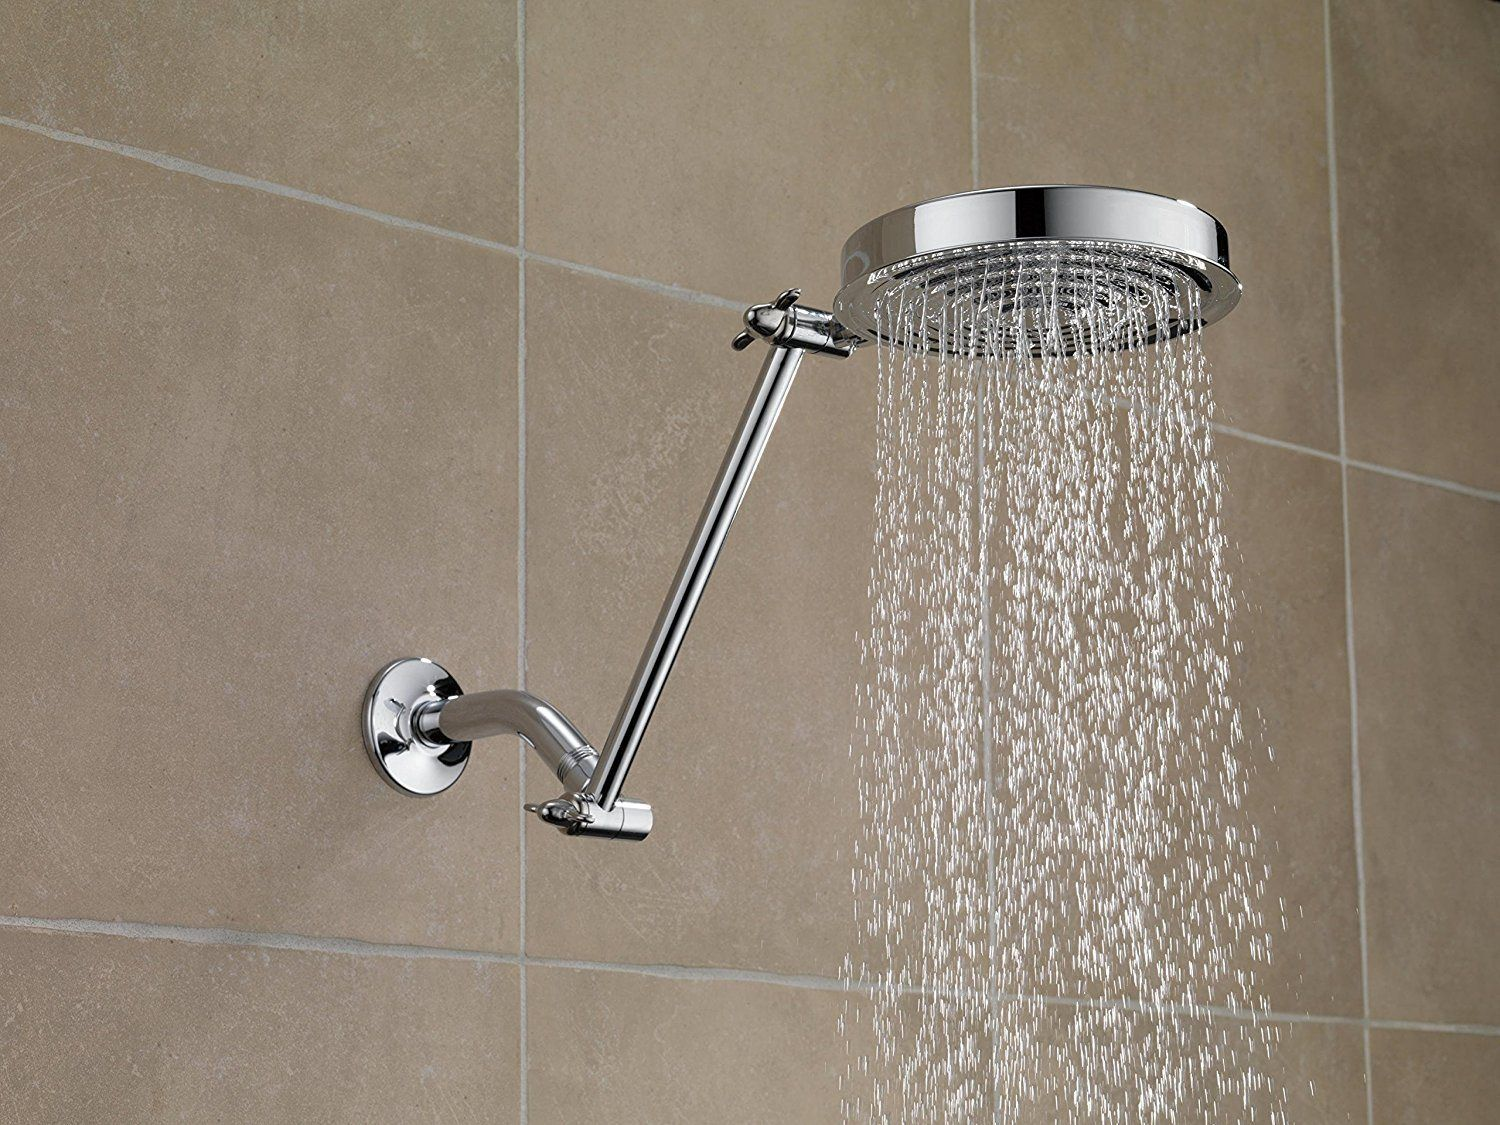 Best Shower Head Extension Arms New Tra Reviews 2019 Shower Head Extension Adjustable Shower Arm Shower Heads